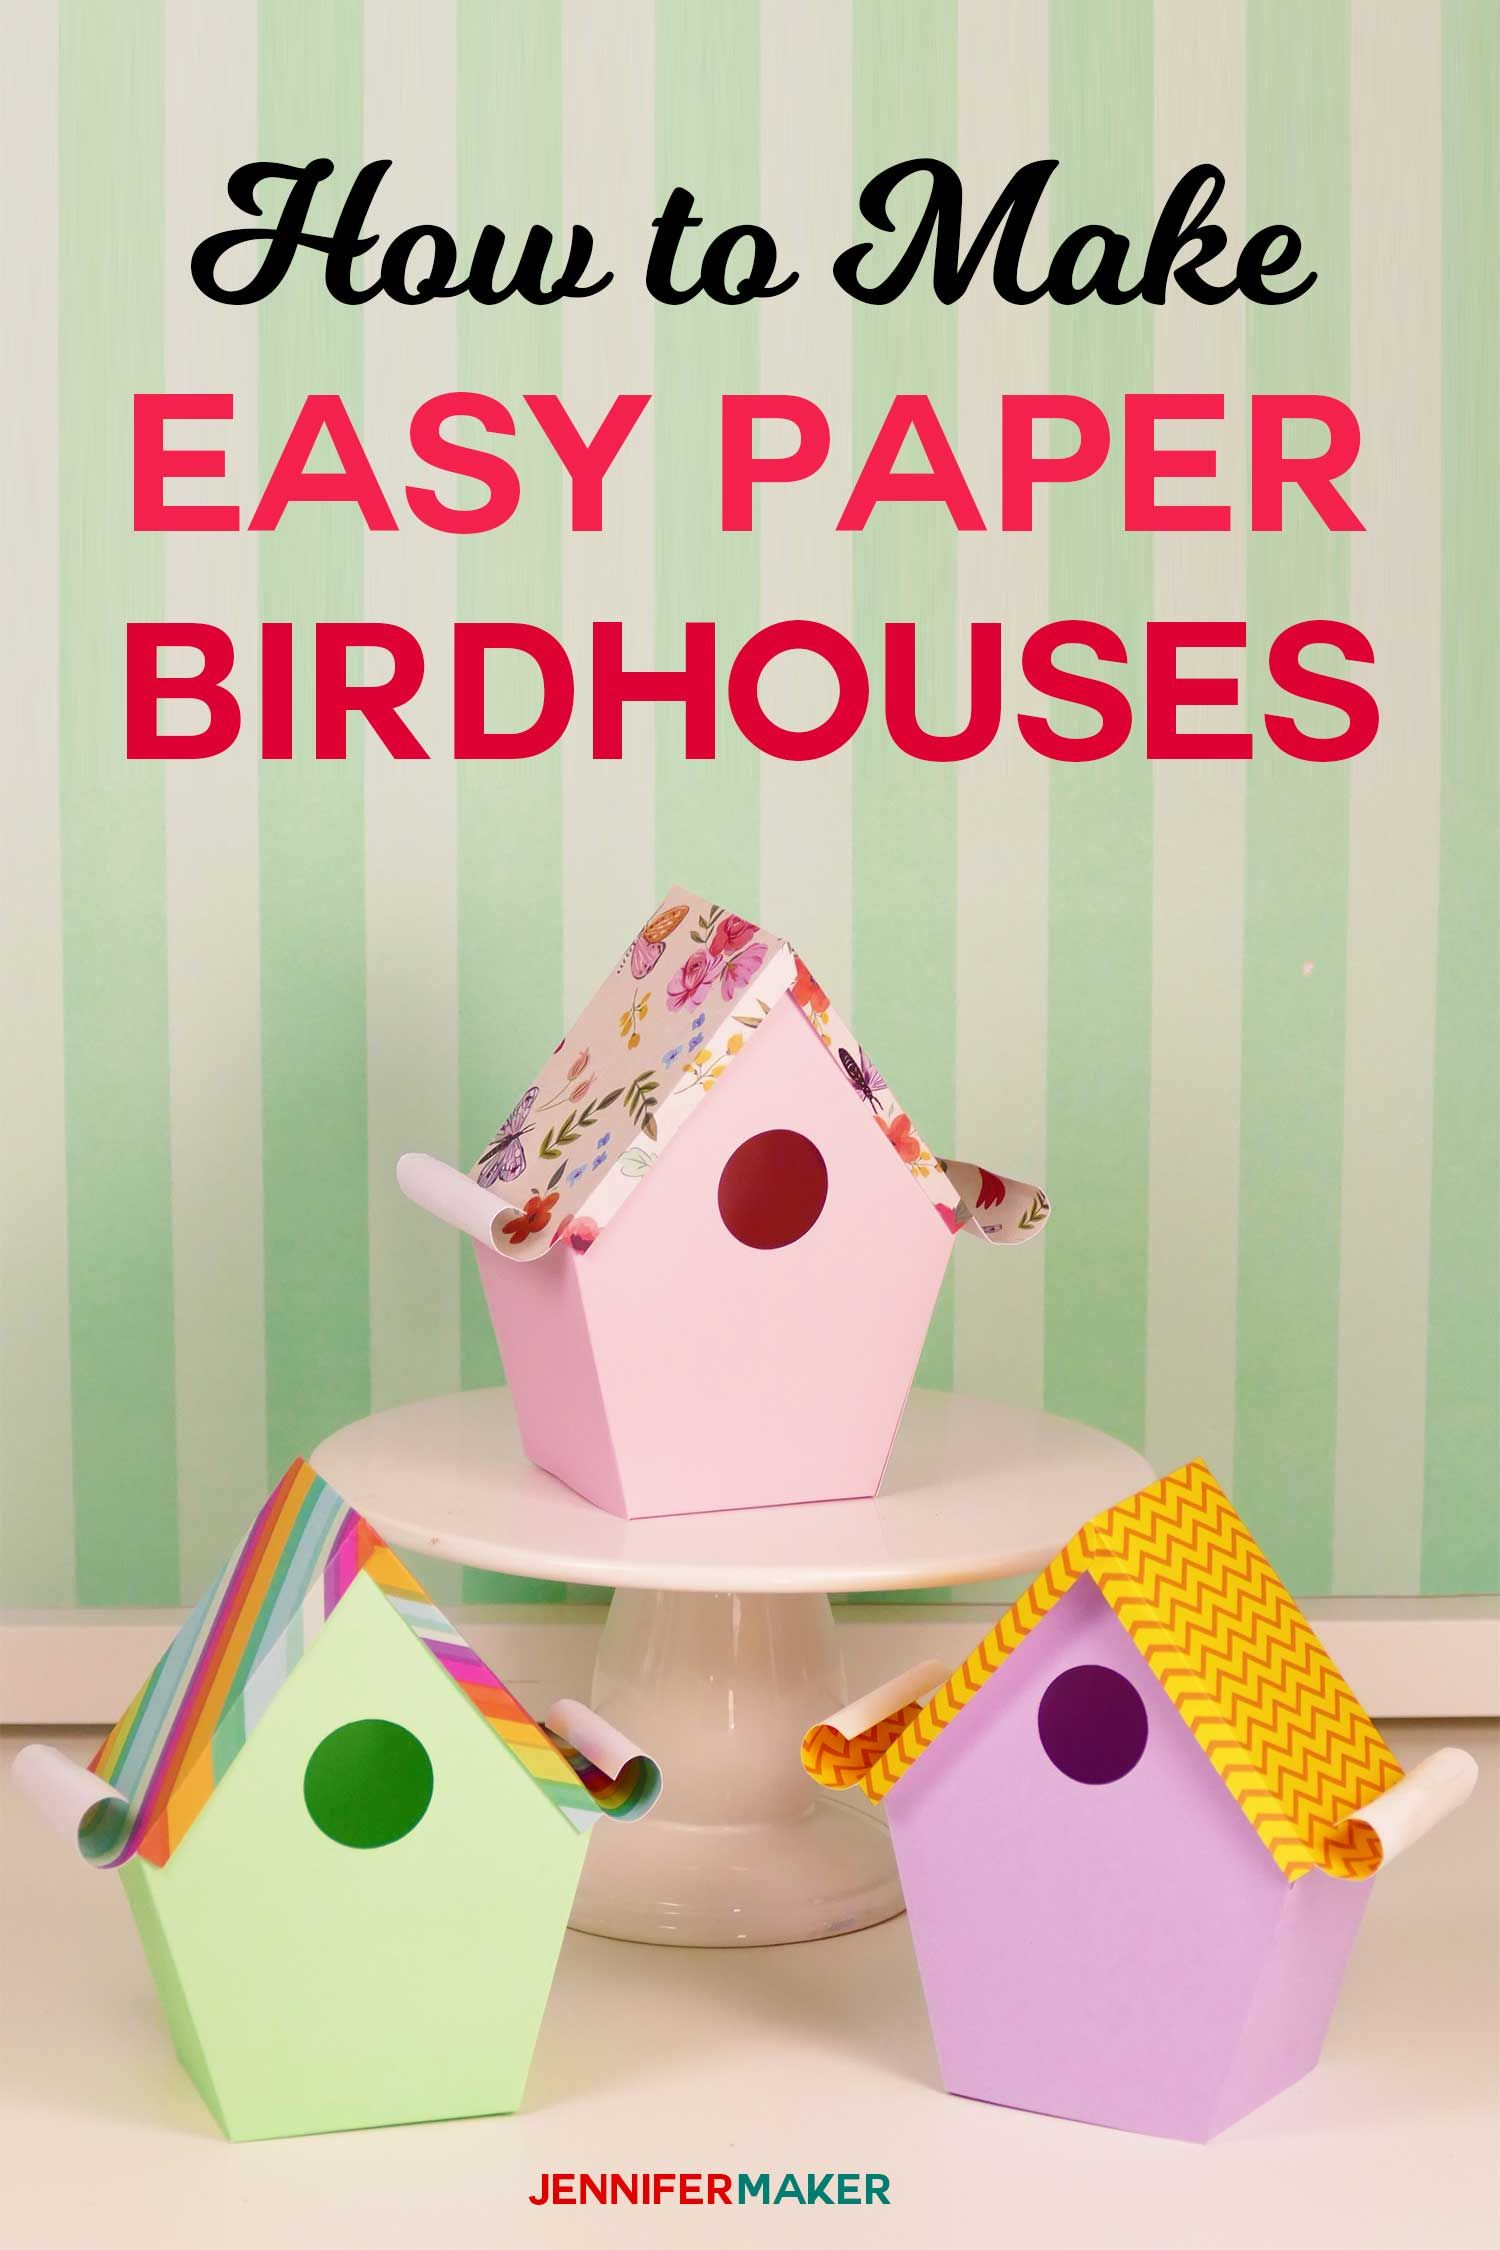 Make Cute Paper Birdhouses With These Birdhouse Template Patterns